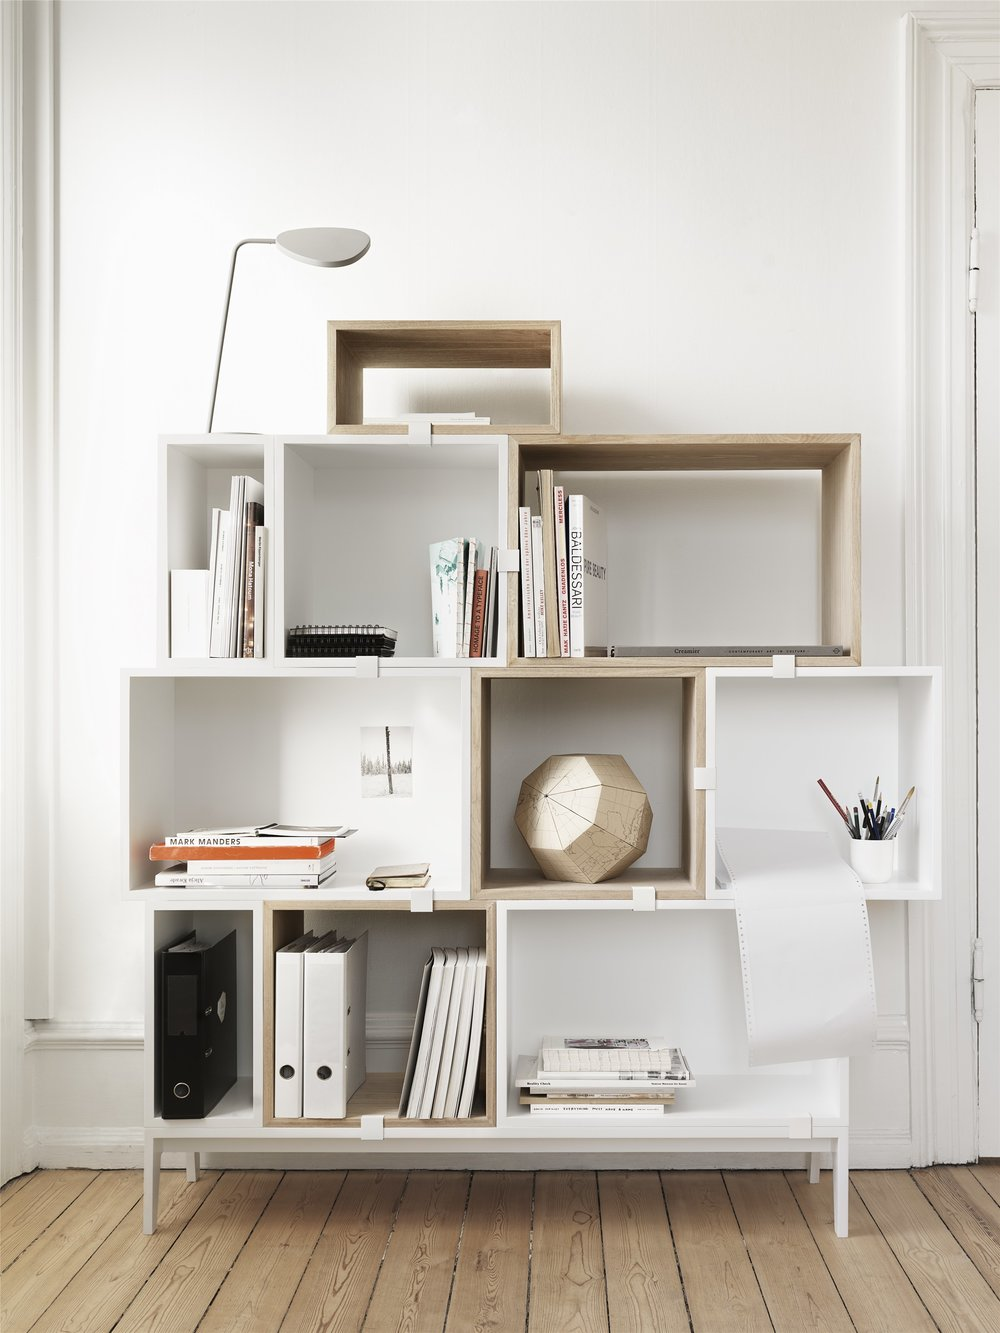 Mini Stacked Shelving System - MUUTO - from £89.00